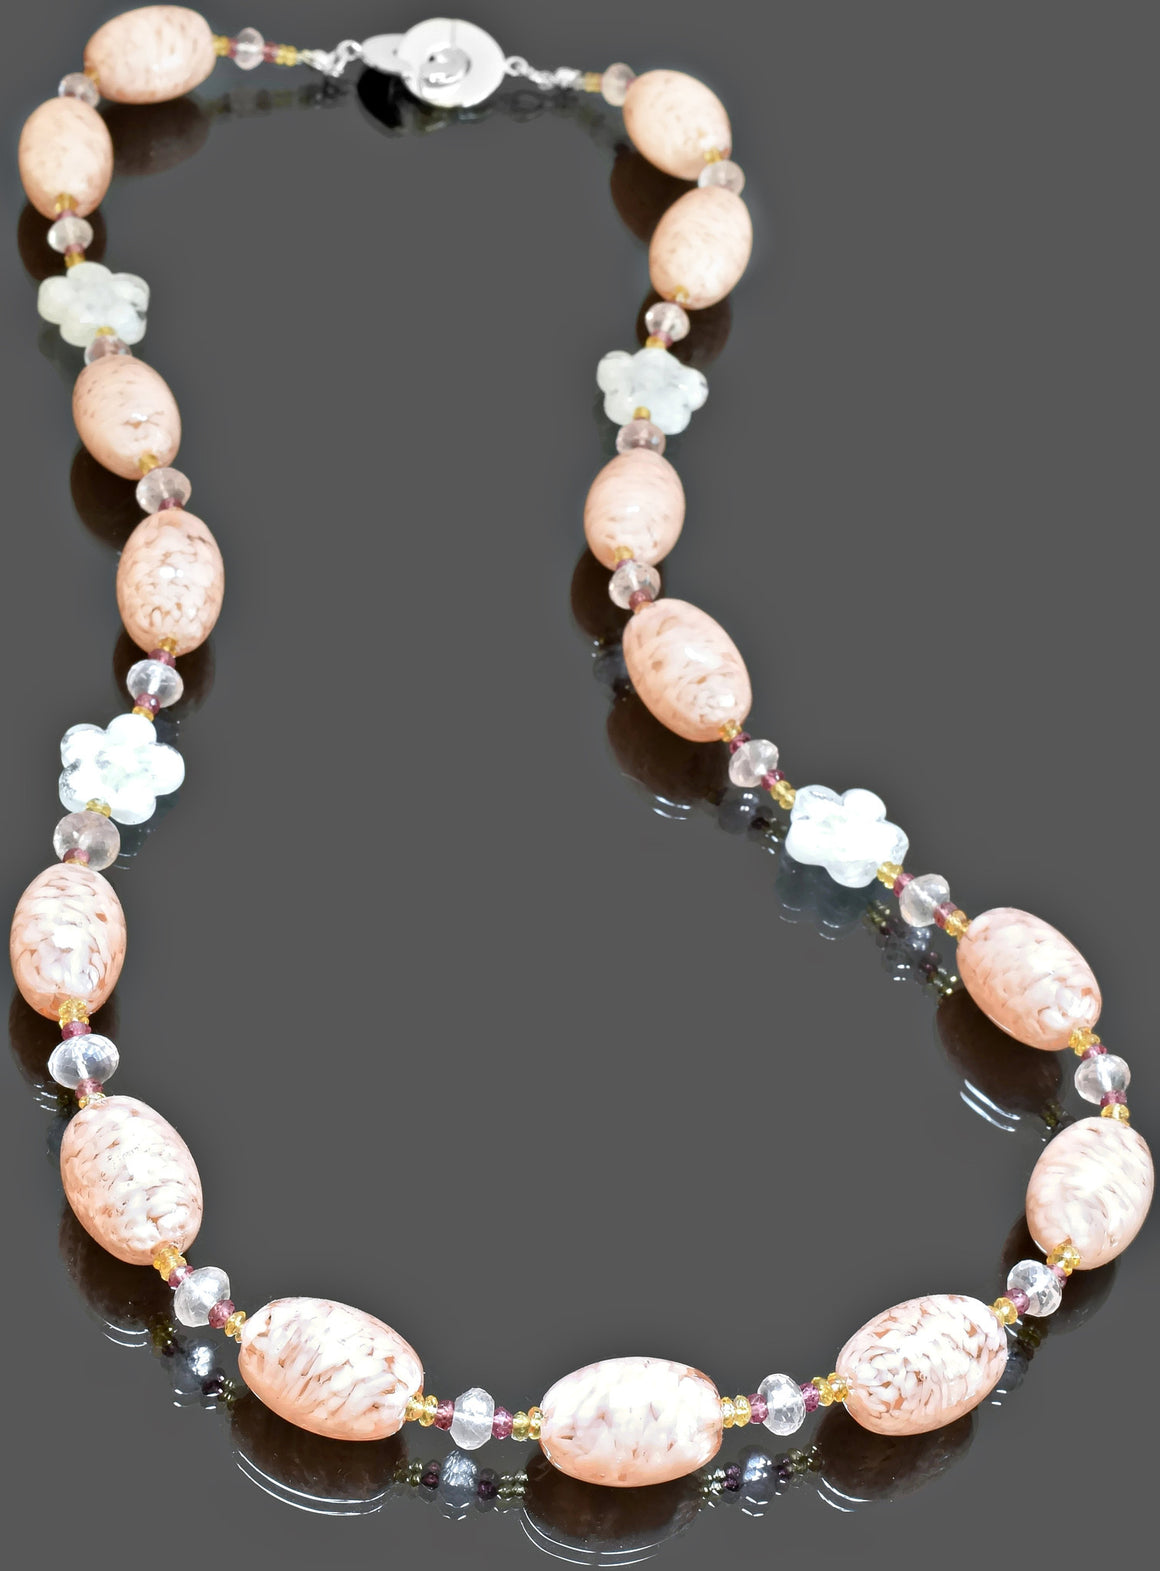 Gemma Collection - Artisan Beaded Necklace 20 - Kollekcio  - 1